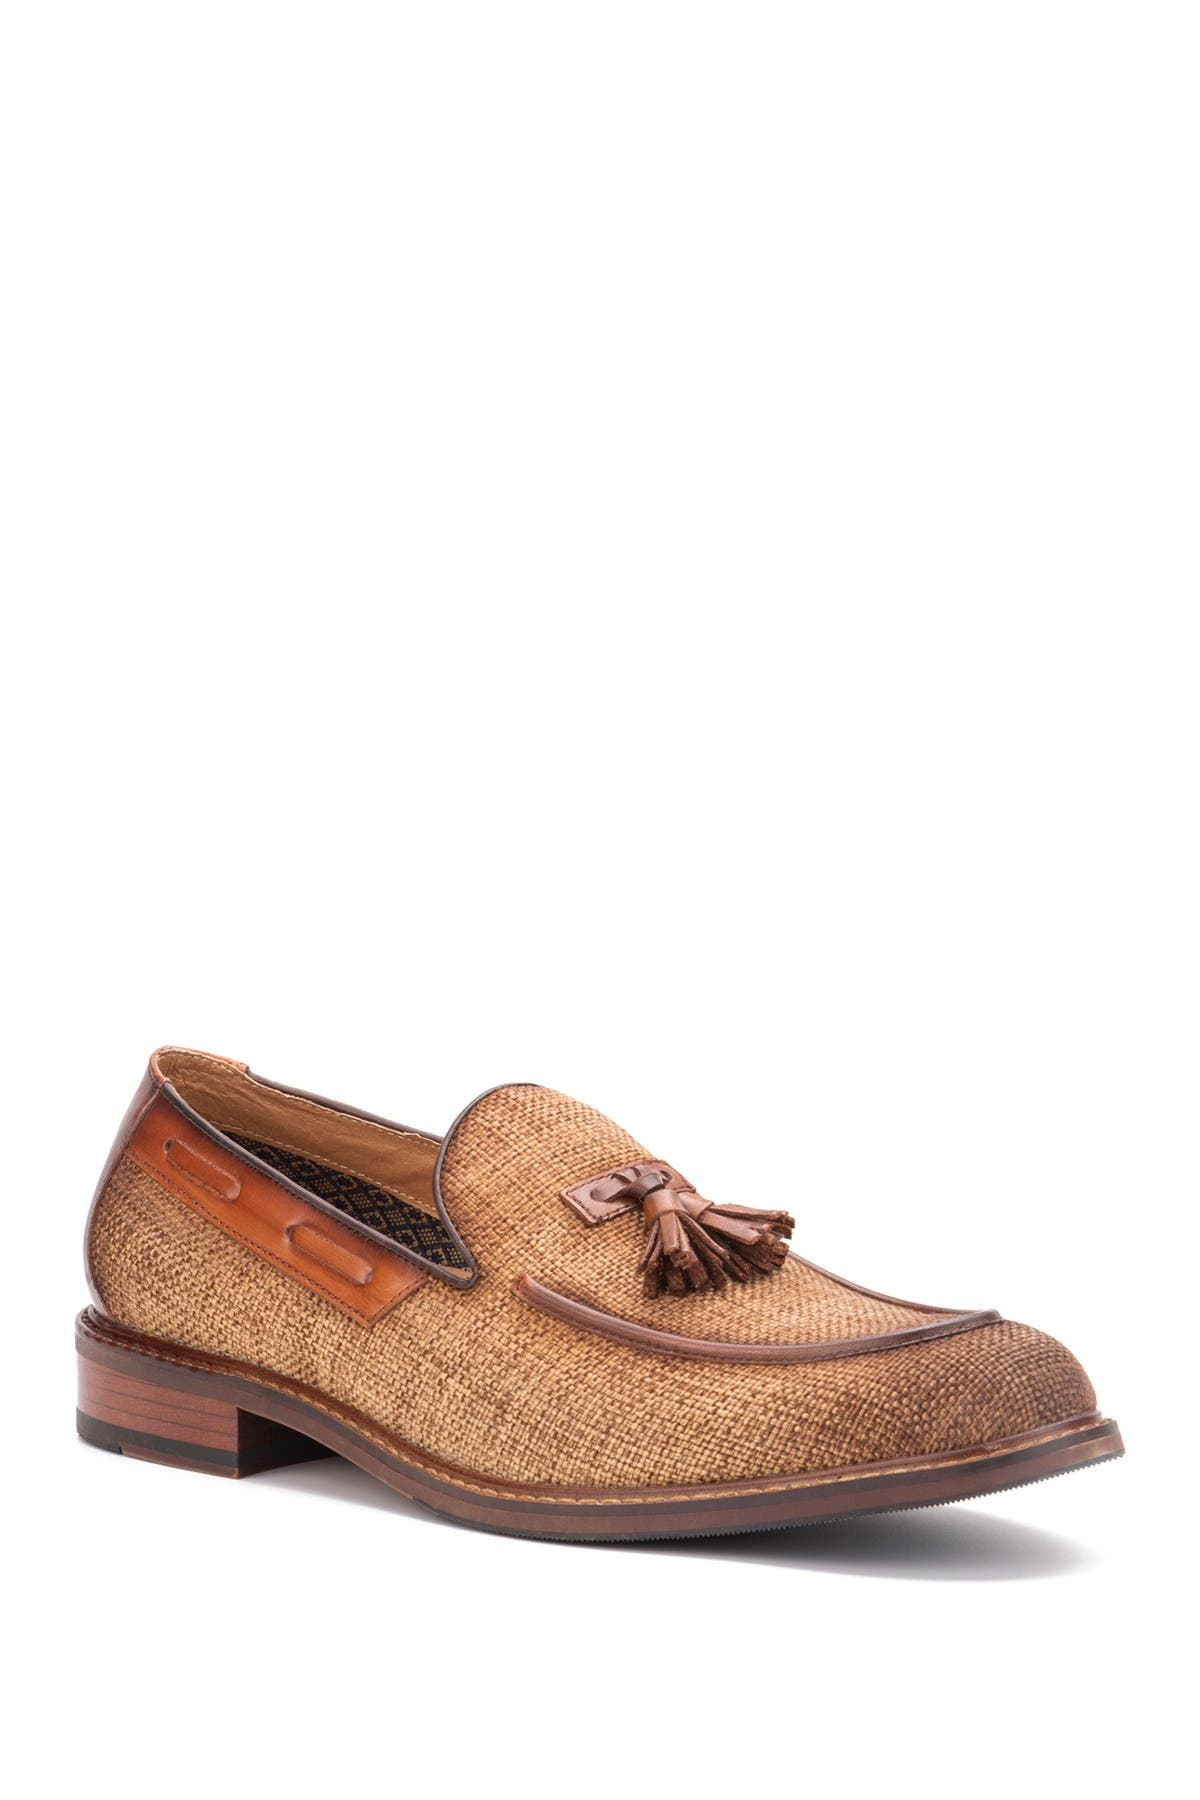 Image of Vintage Foundry Randy Tassel Loafer